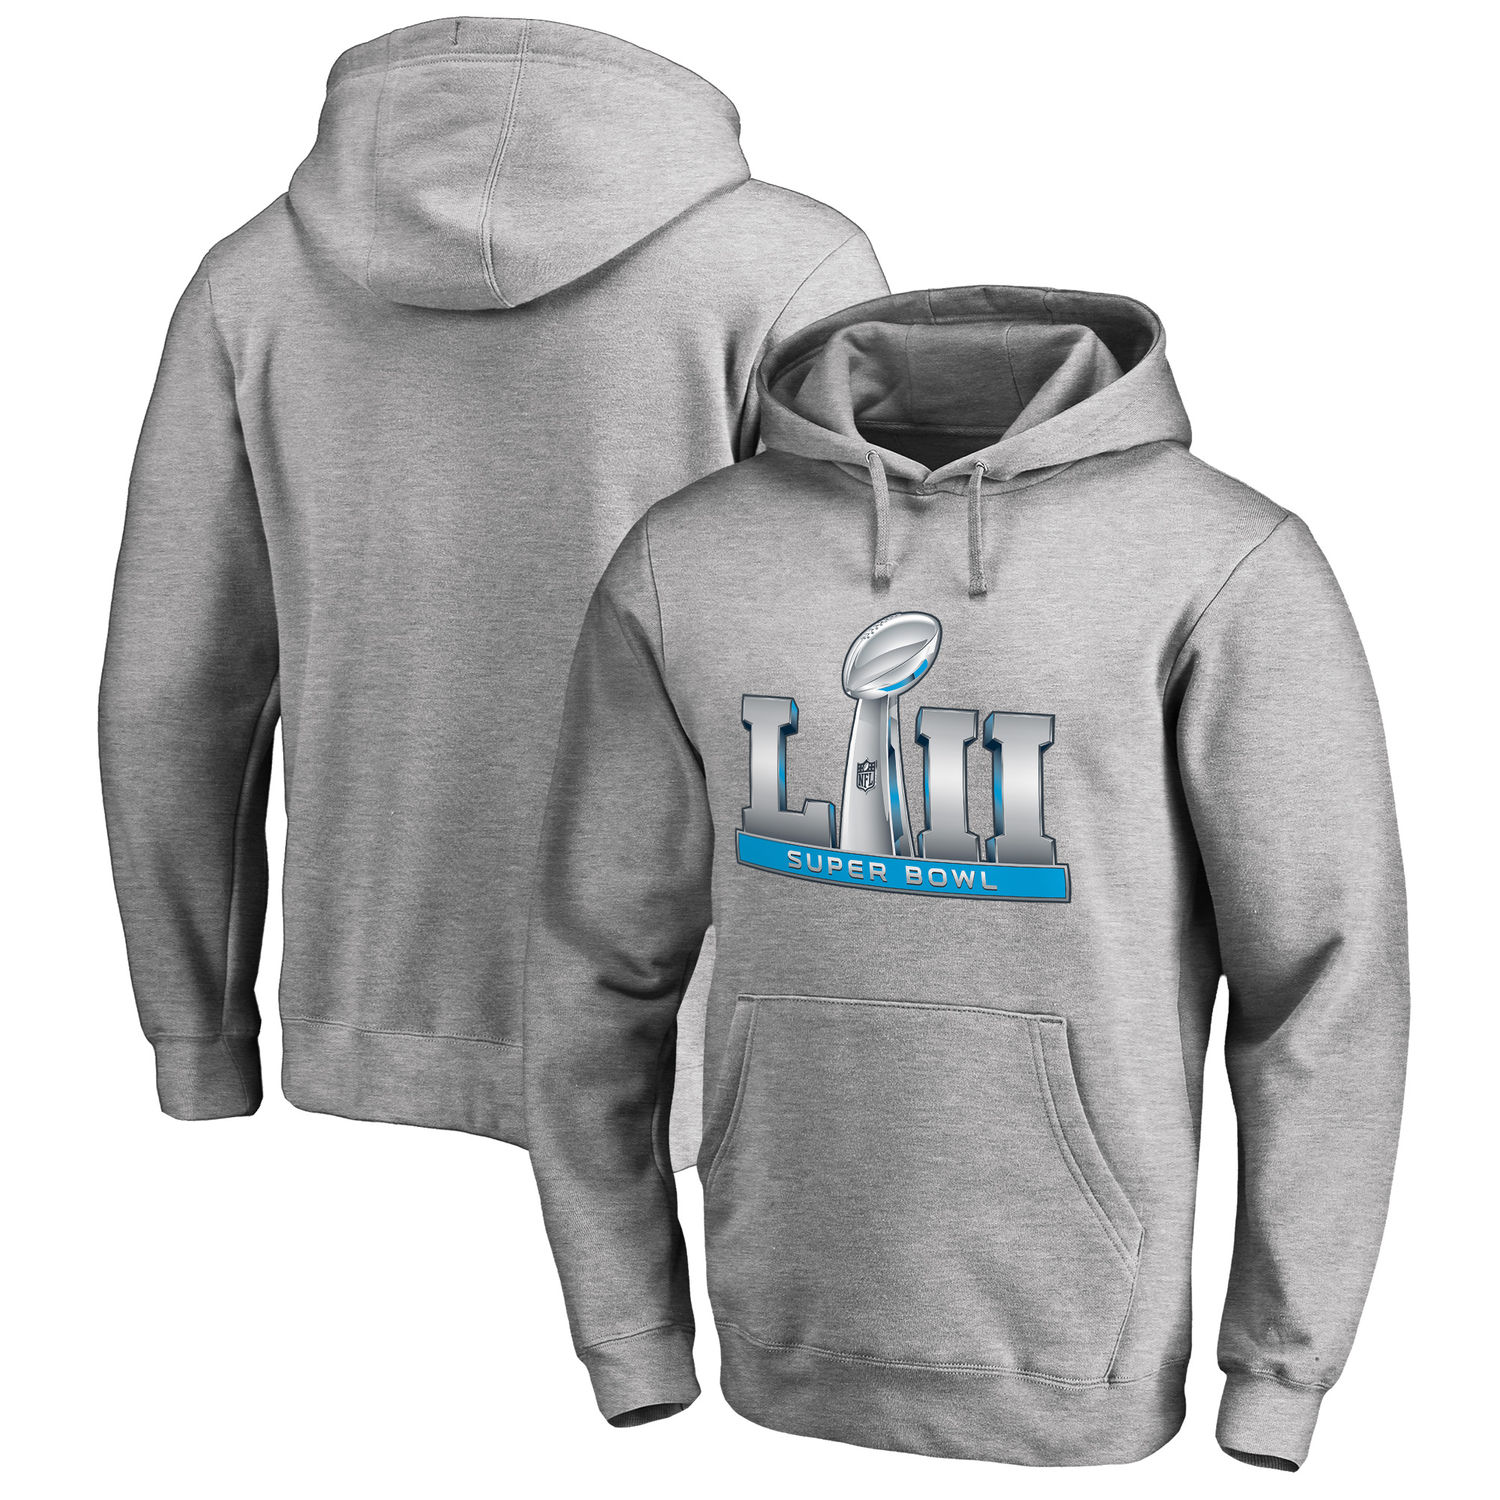 Men's NFL Pro Line by Fanatics Branded Heathered Gray Super Bowl LII Event Pullover Hoodie